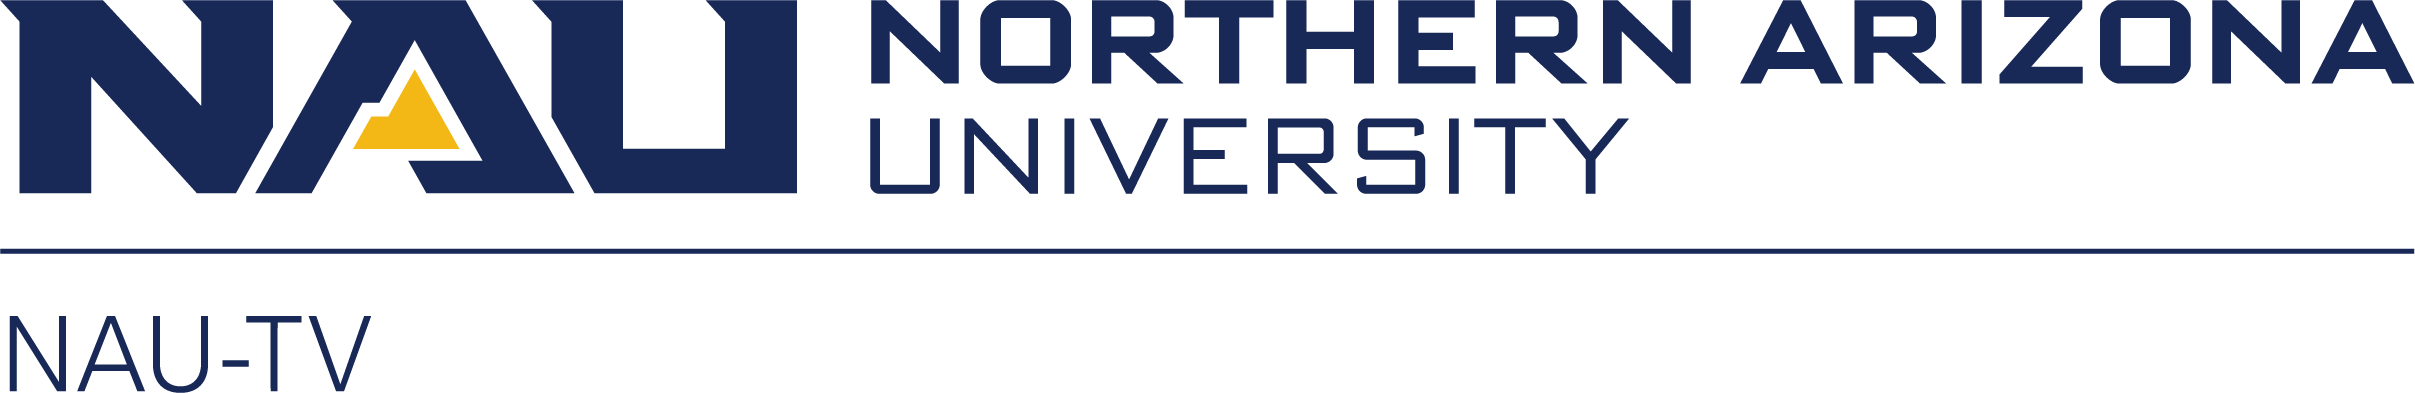 Northern Arizona University - Extended Campuses - Elementary Spanish Program